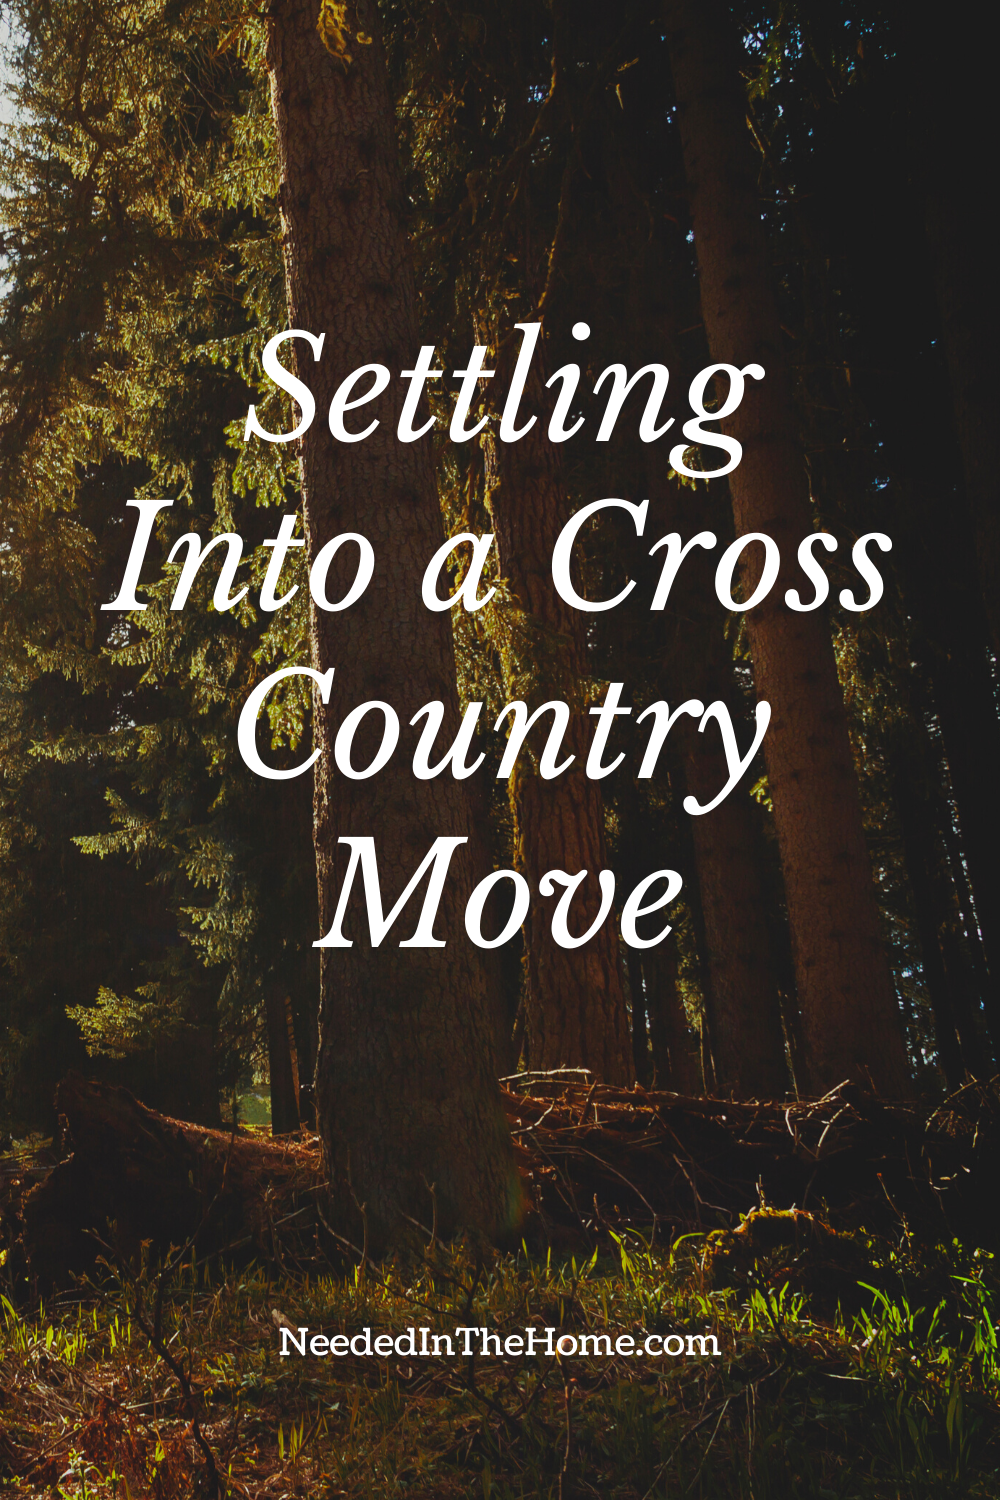 pinterest-pin-description Settling Into A Cross Country Move woods neededinthehome